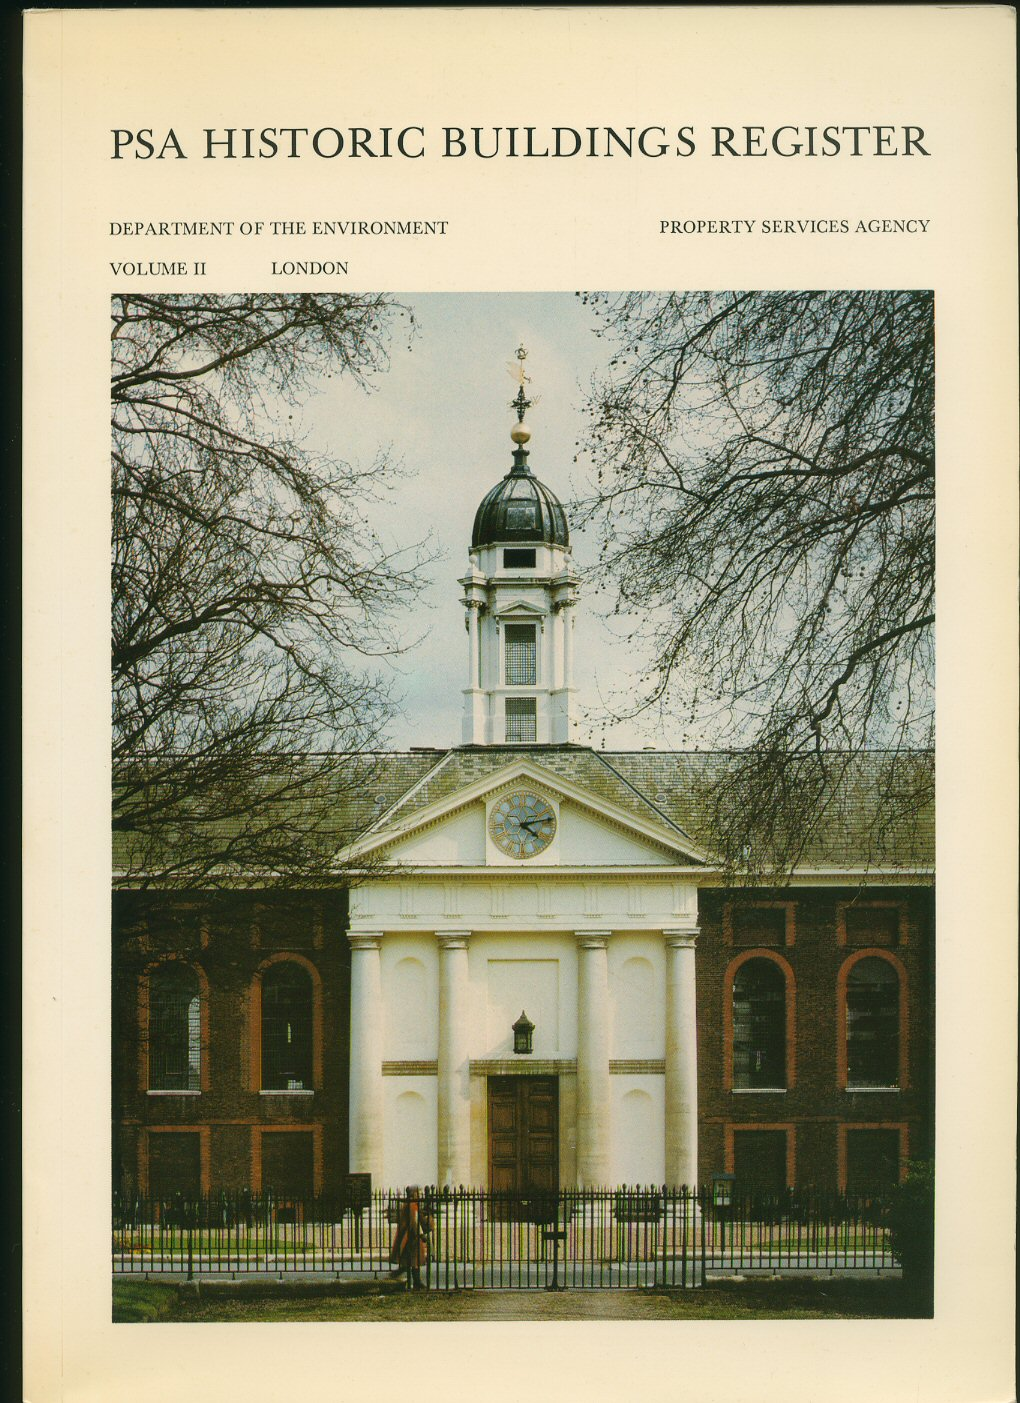 NEW, ANTHONY [SERIES EDITOR ALASDAIR GLASS] - PSA Historic Buildings Register; Historic Buildings in the care of Property Services Agency of the Department of the Environment [Volume II London]